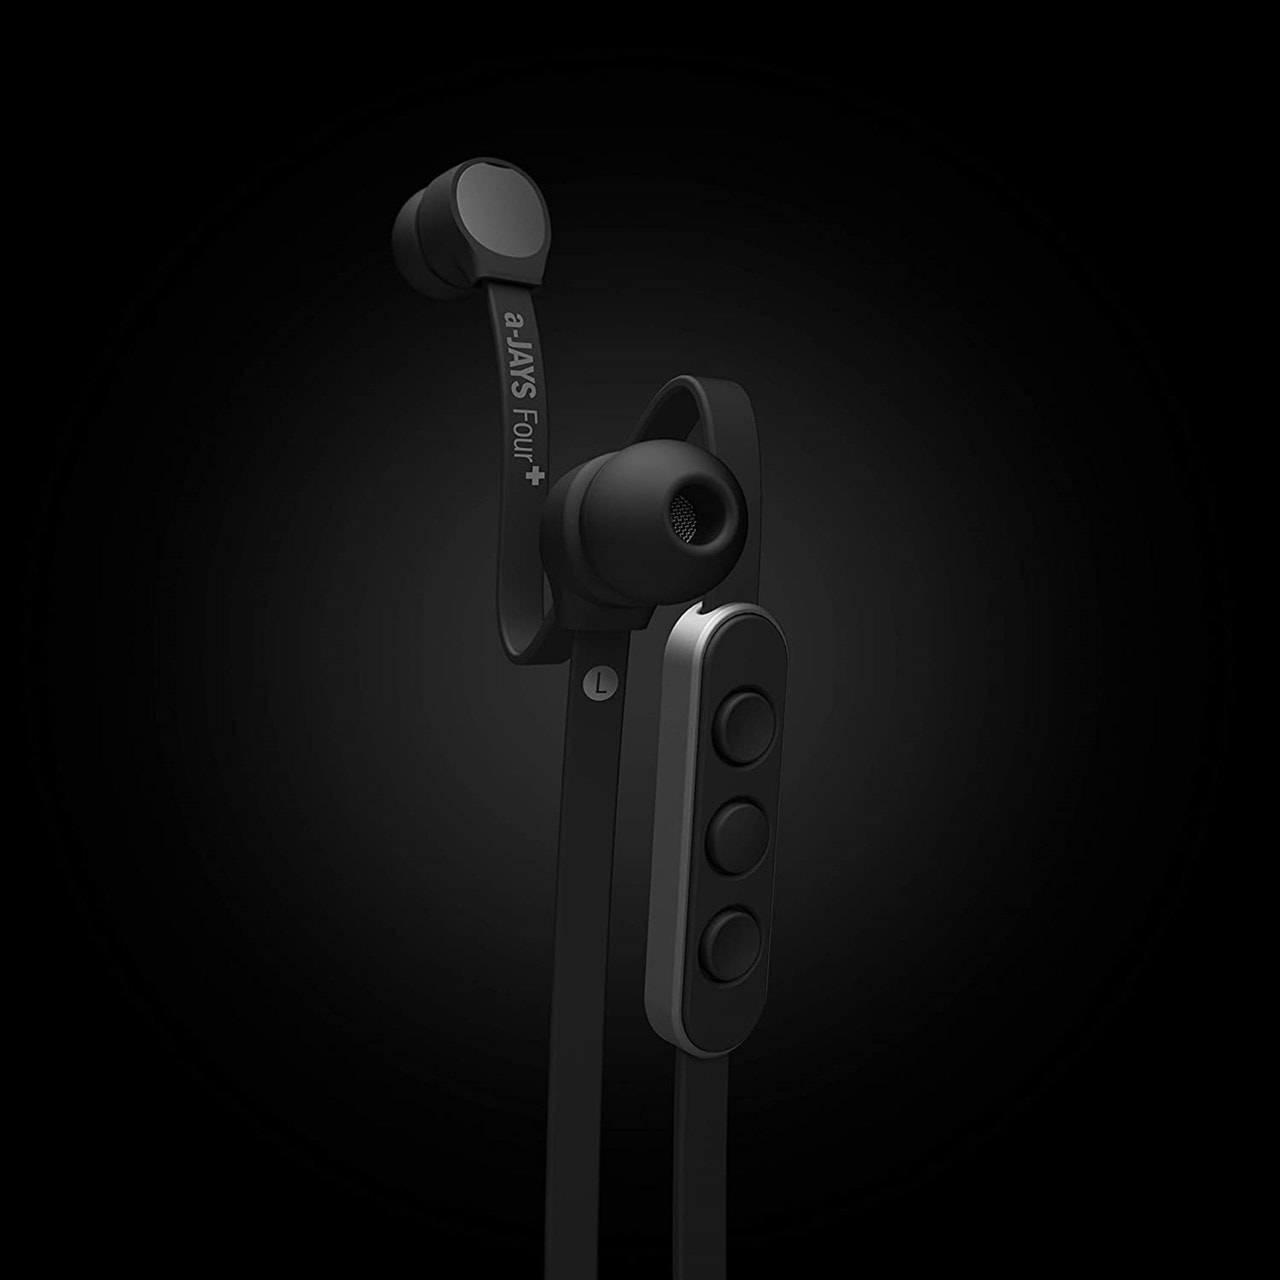 Jays A-Jays Four+ Android Black/Silver Earphones - 2